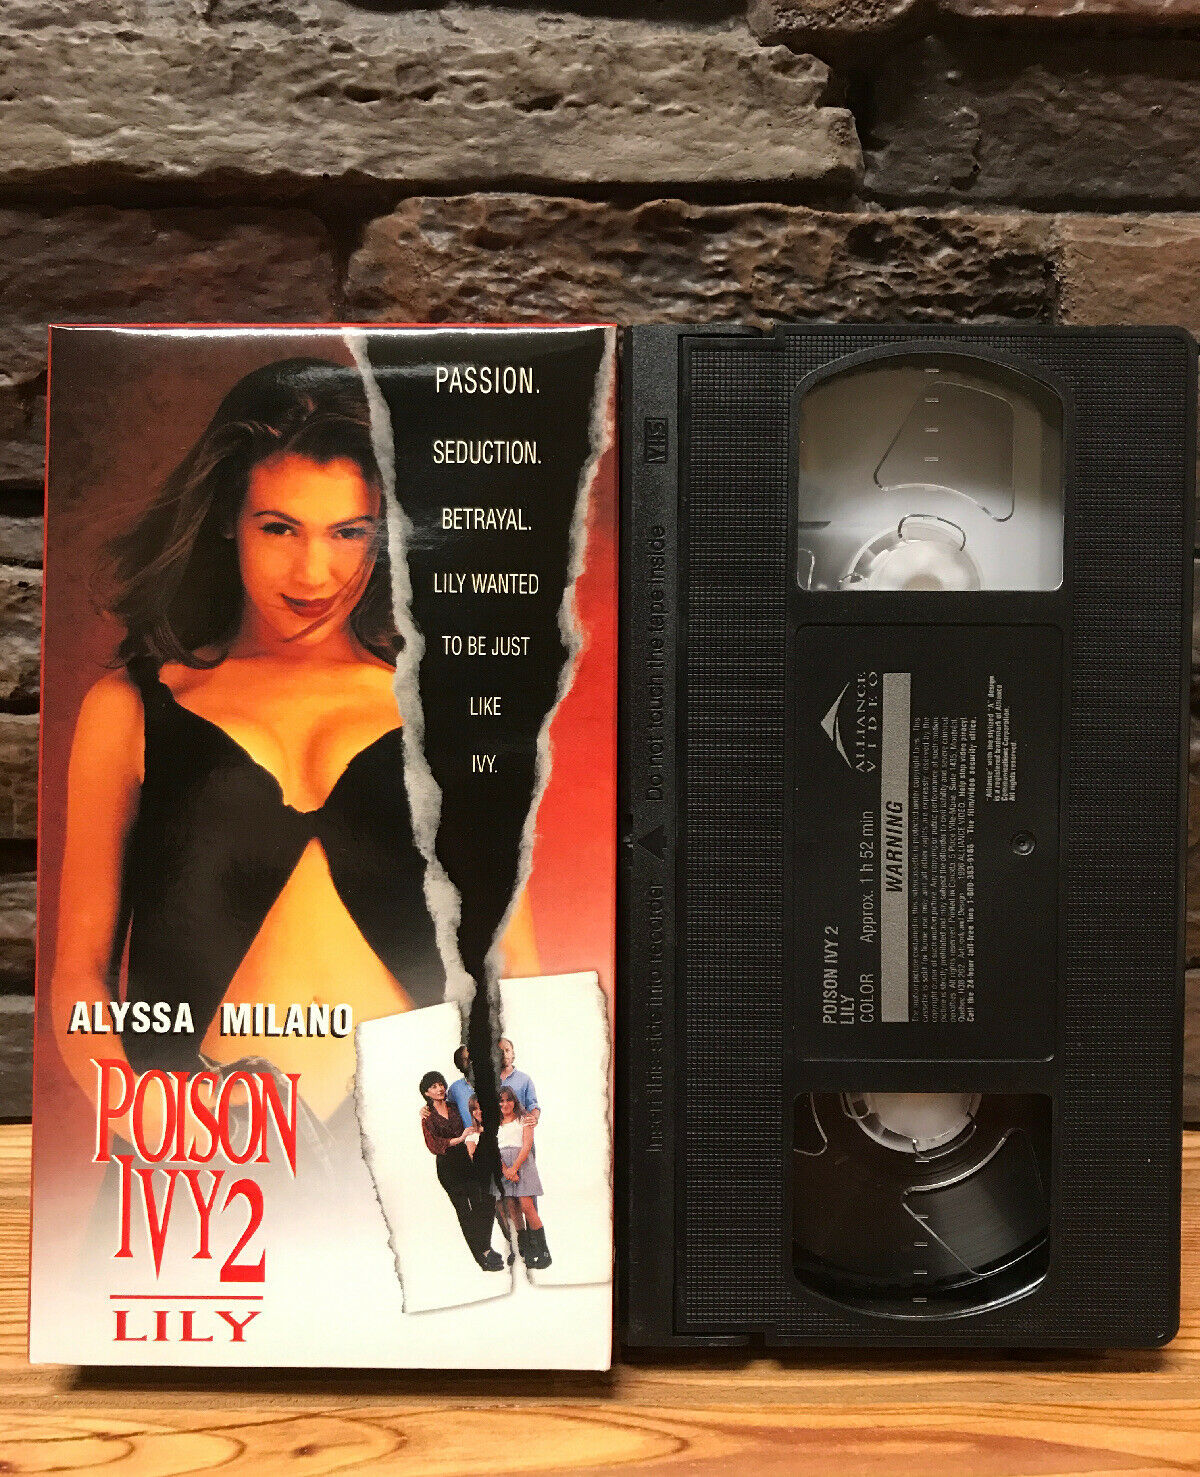 Alyssa Milano Poison Ivy 2 poison ivy 2: lily (vhs, 1996, unrated)